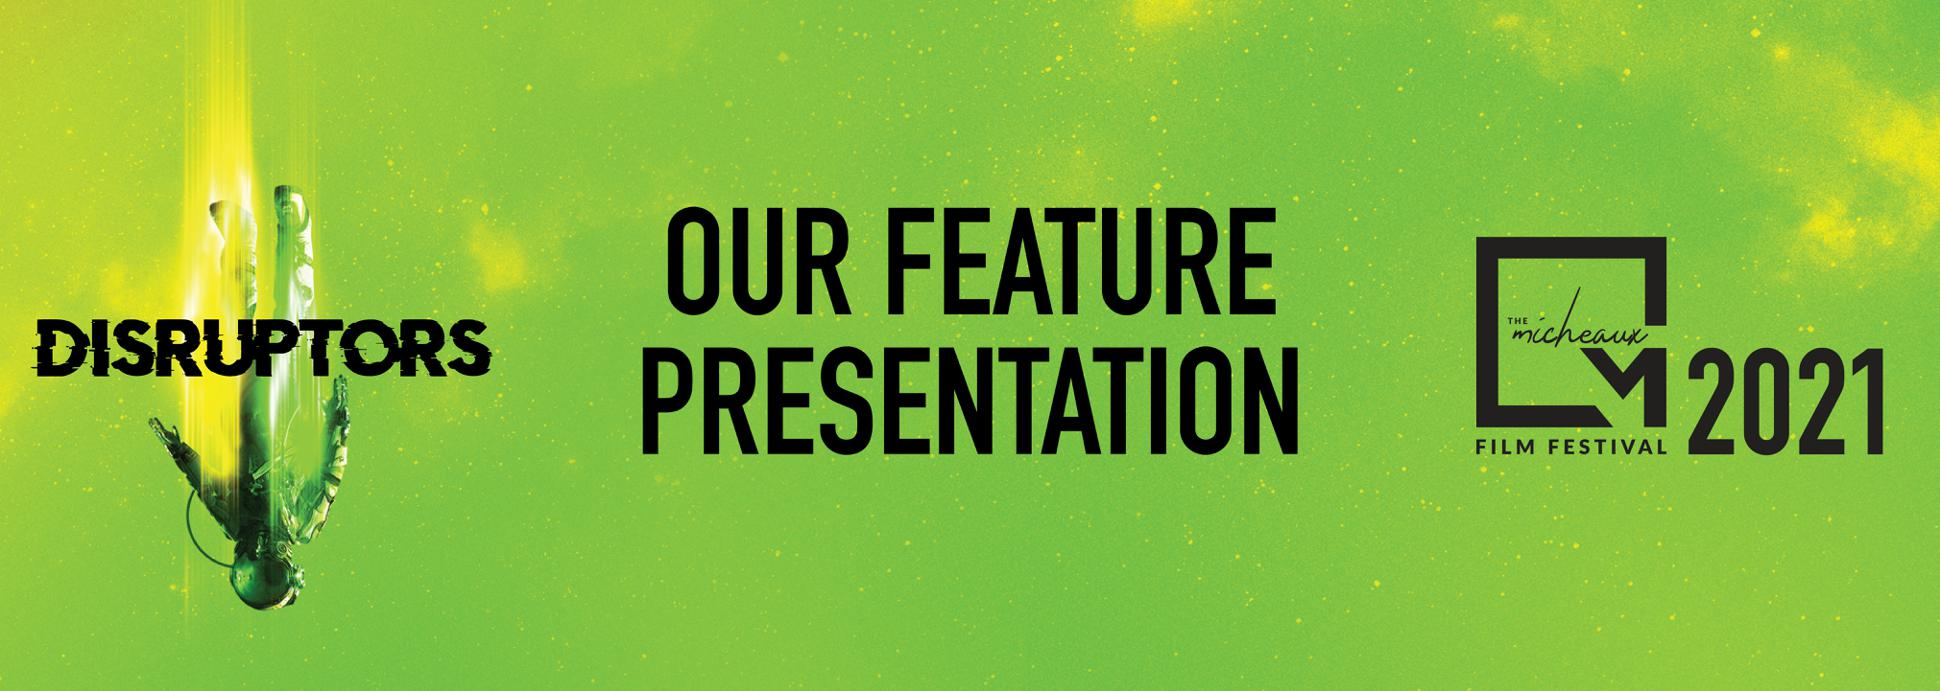 Our Feature Presentation (Features)